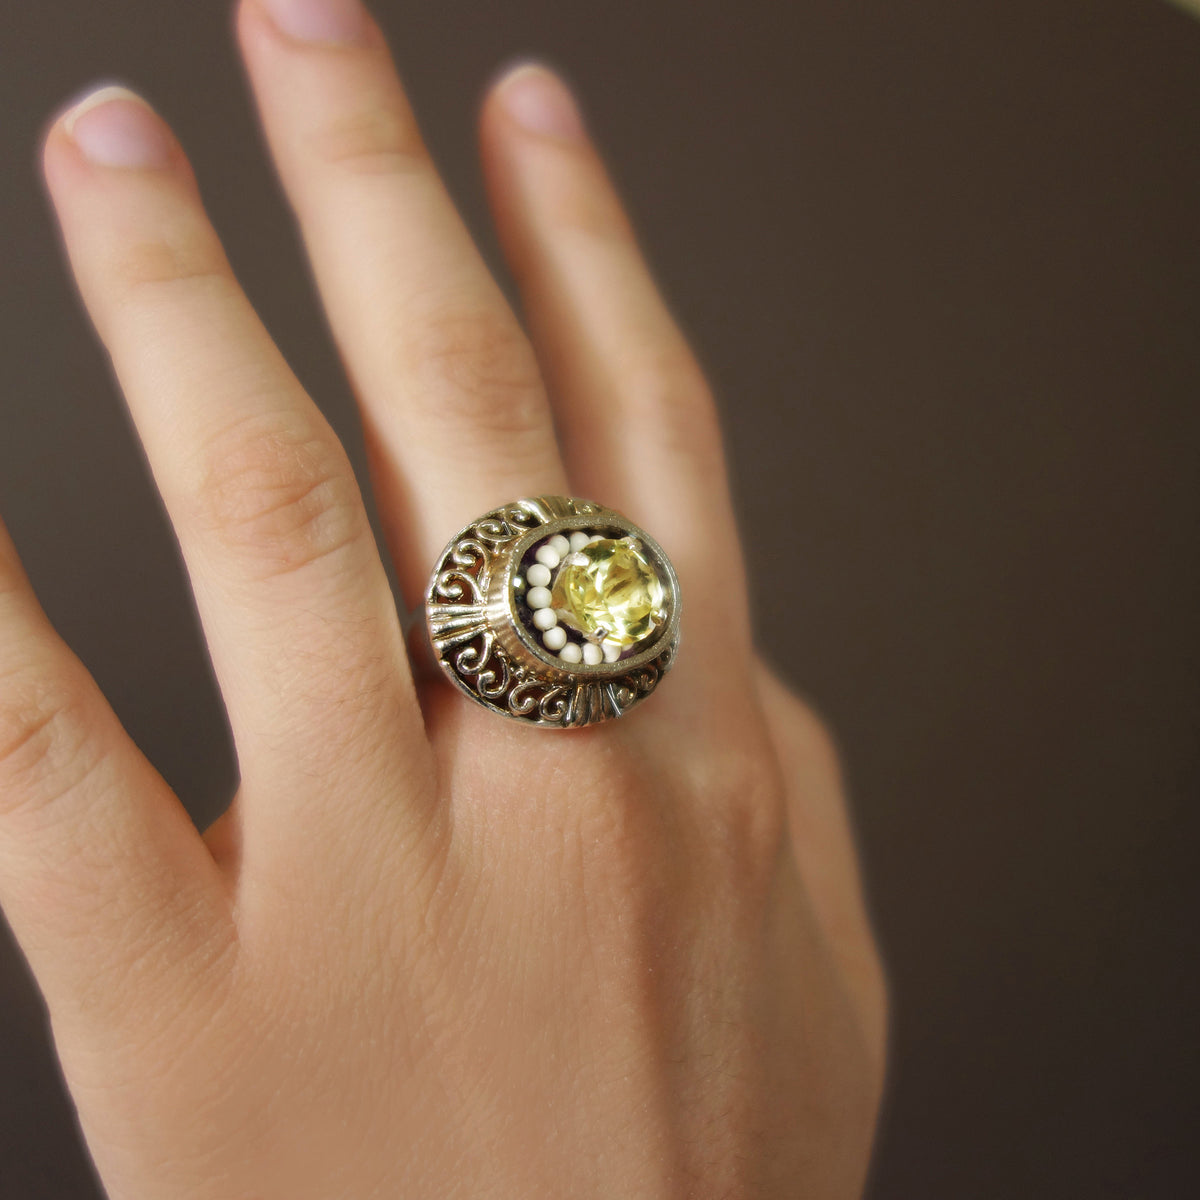 Citrine, Alabaster, and Crystal Quartz mosaic ring